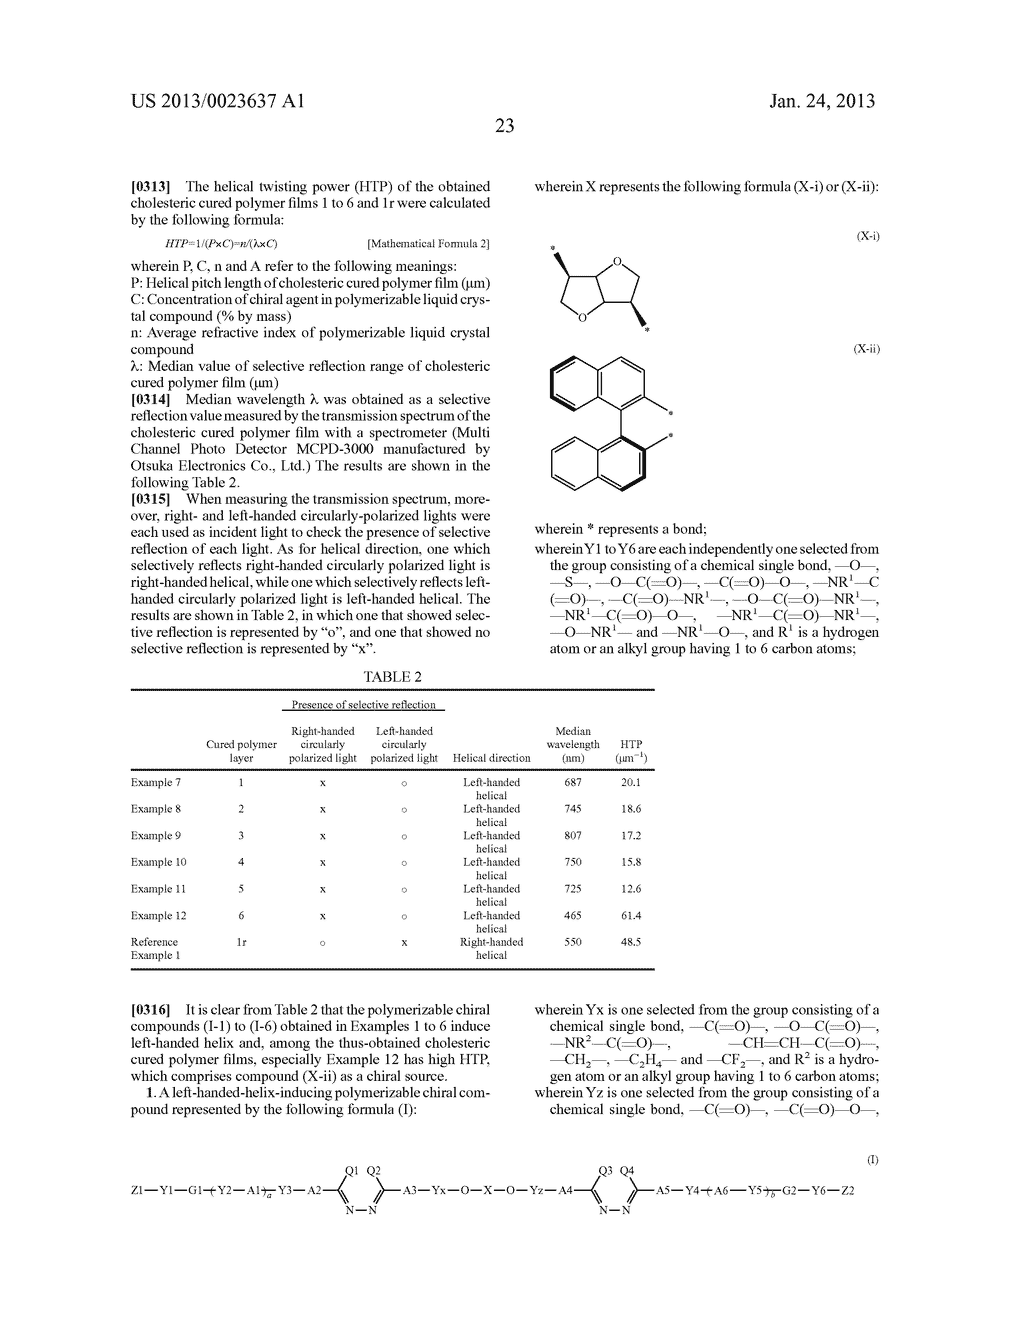 Polymerizable Chiral Compound Liquid Crystal Body Diagram Example Polymer And Optically Anisotropic Schematic